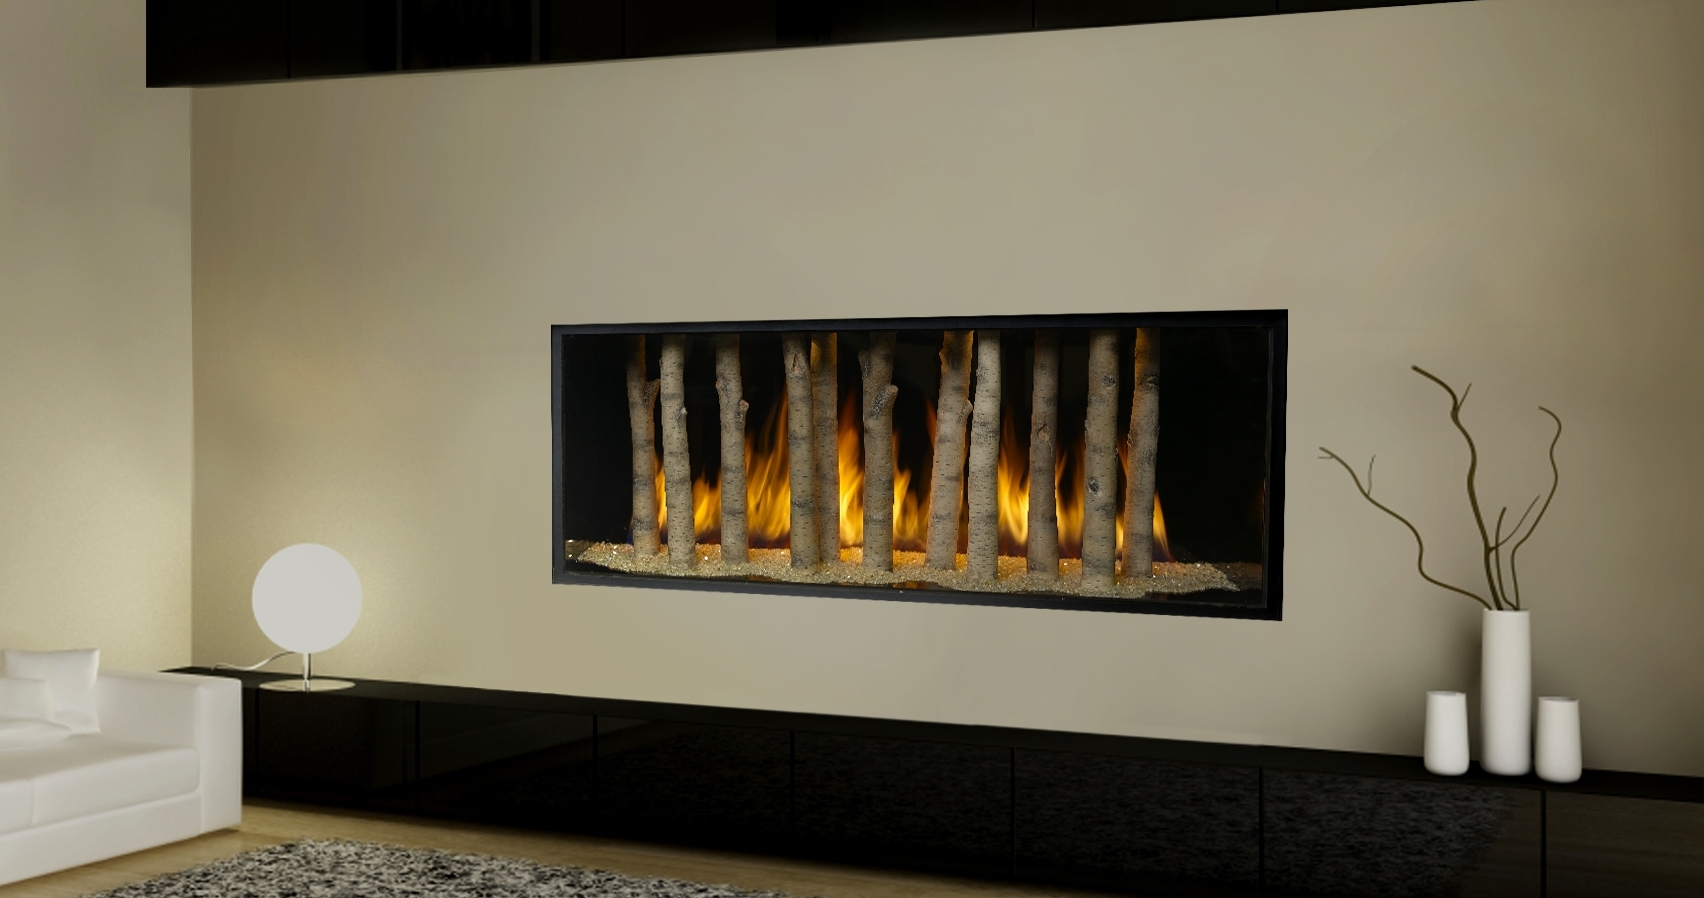 designs fireplace images pinkax gas modern stone trends com with